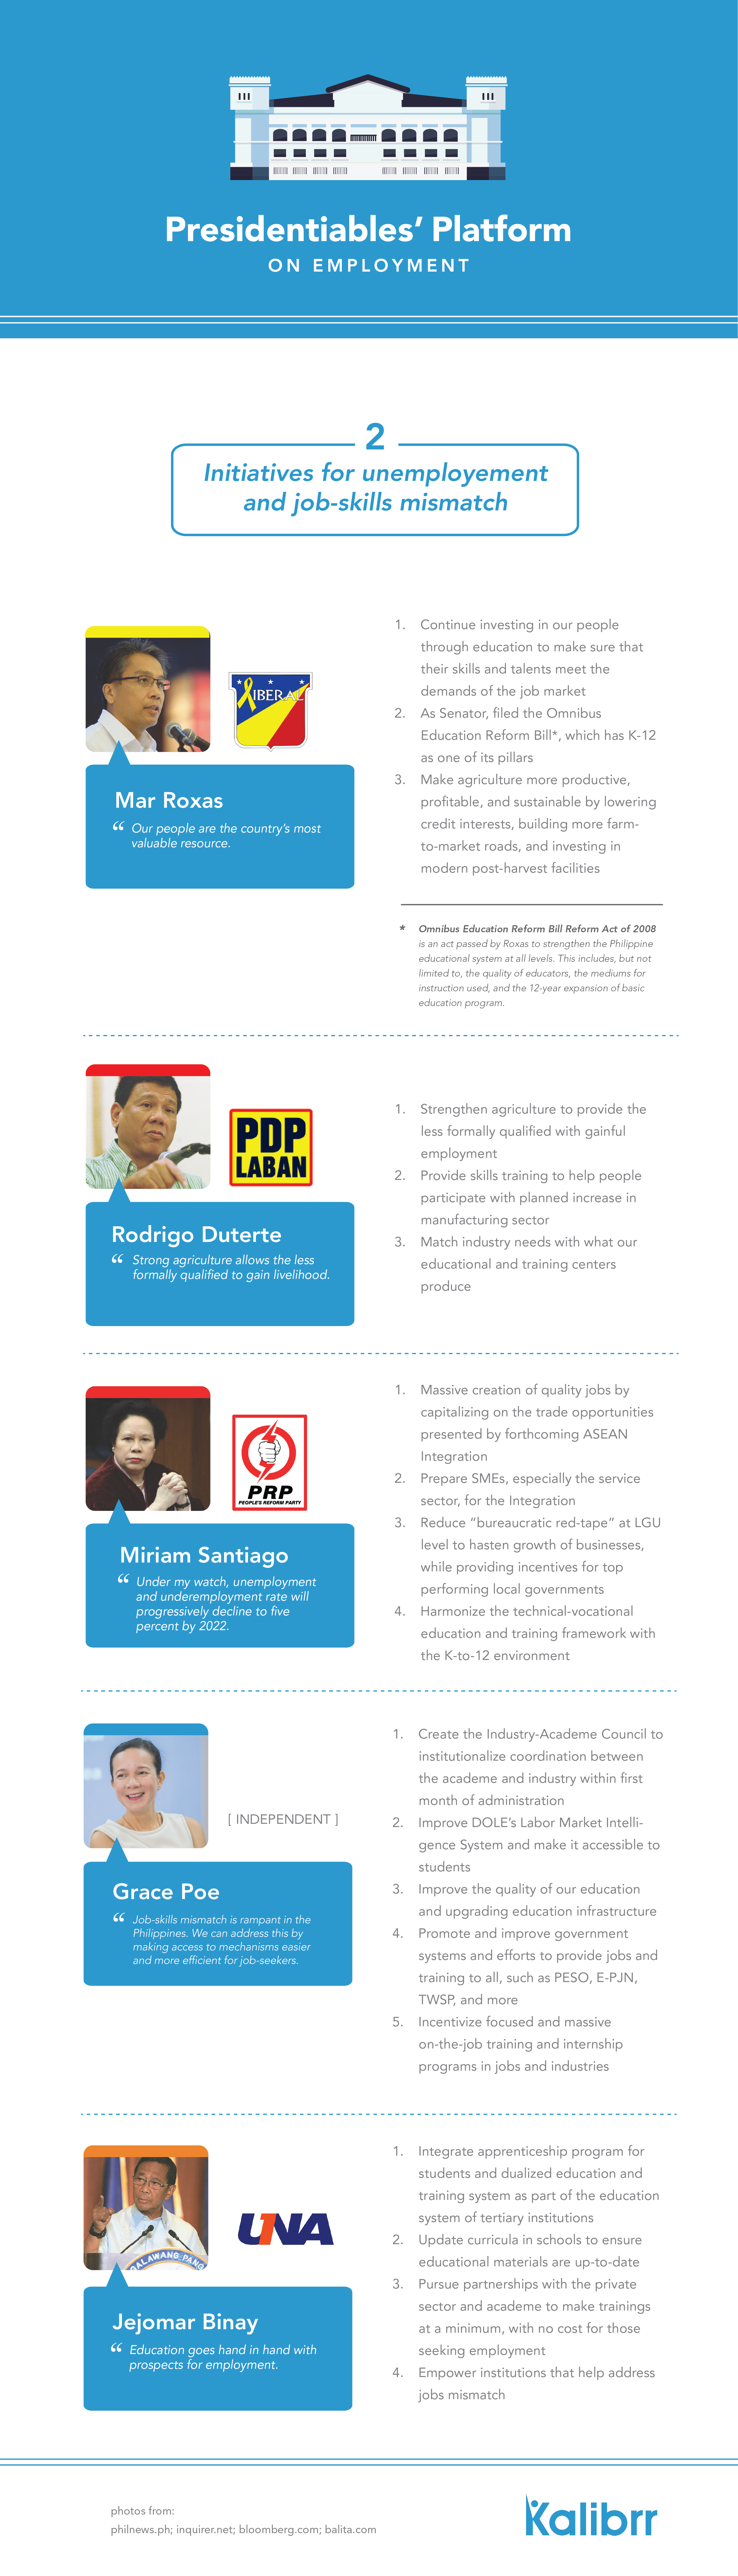 [Infographic] Presidentiables Platform - 02